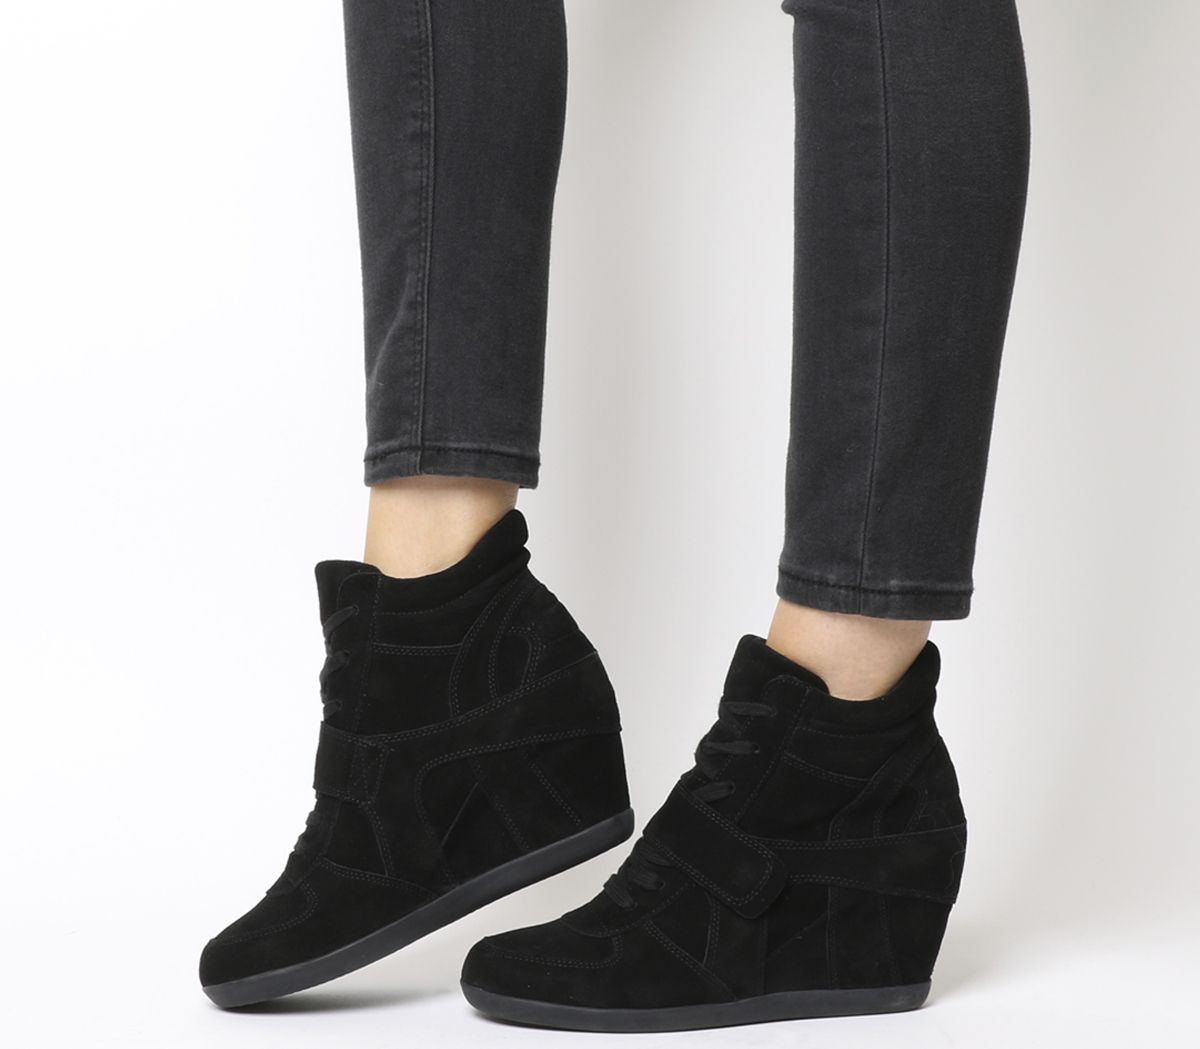 5879060e693f Ash Bowie Hi Top Wedge Sneaker Boots Black Suede - Ankle Boots